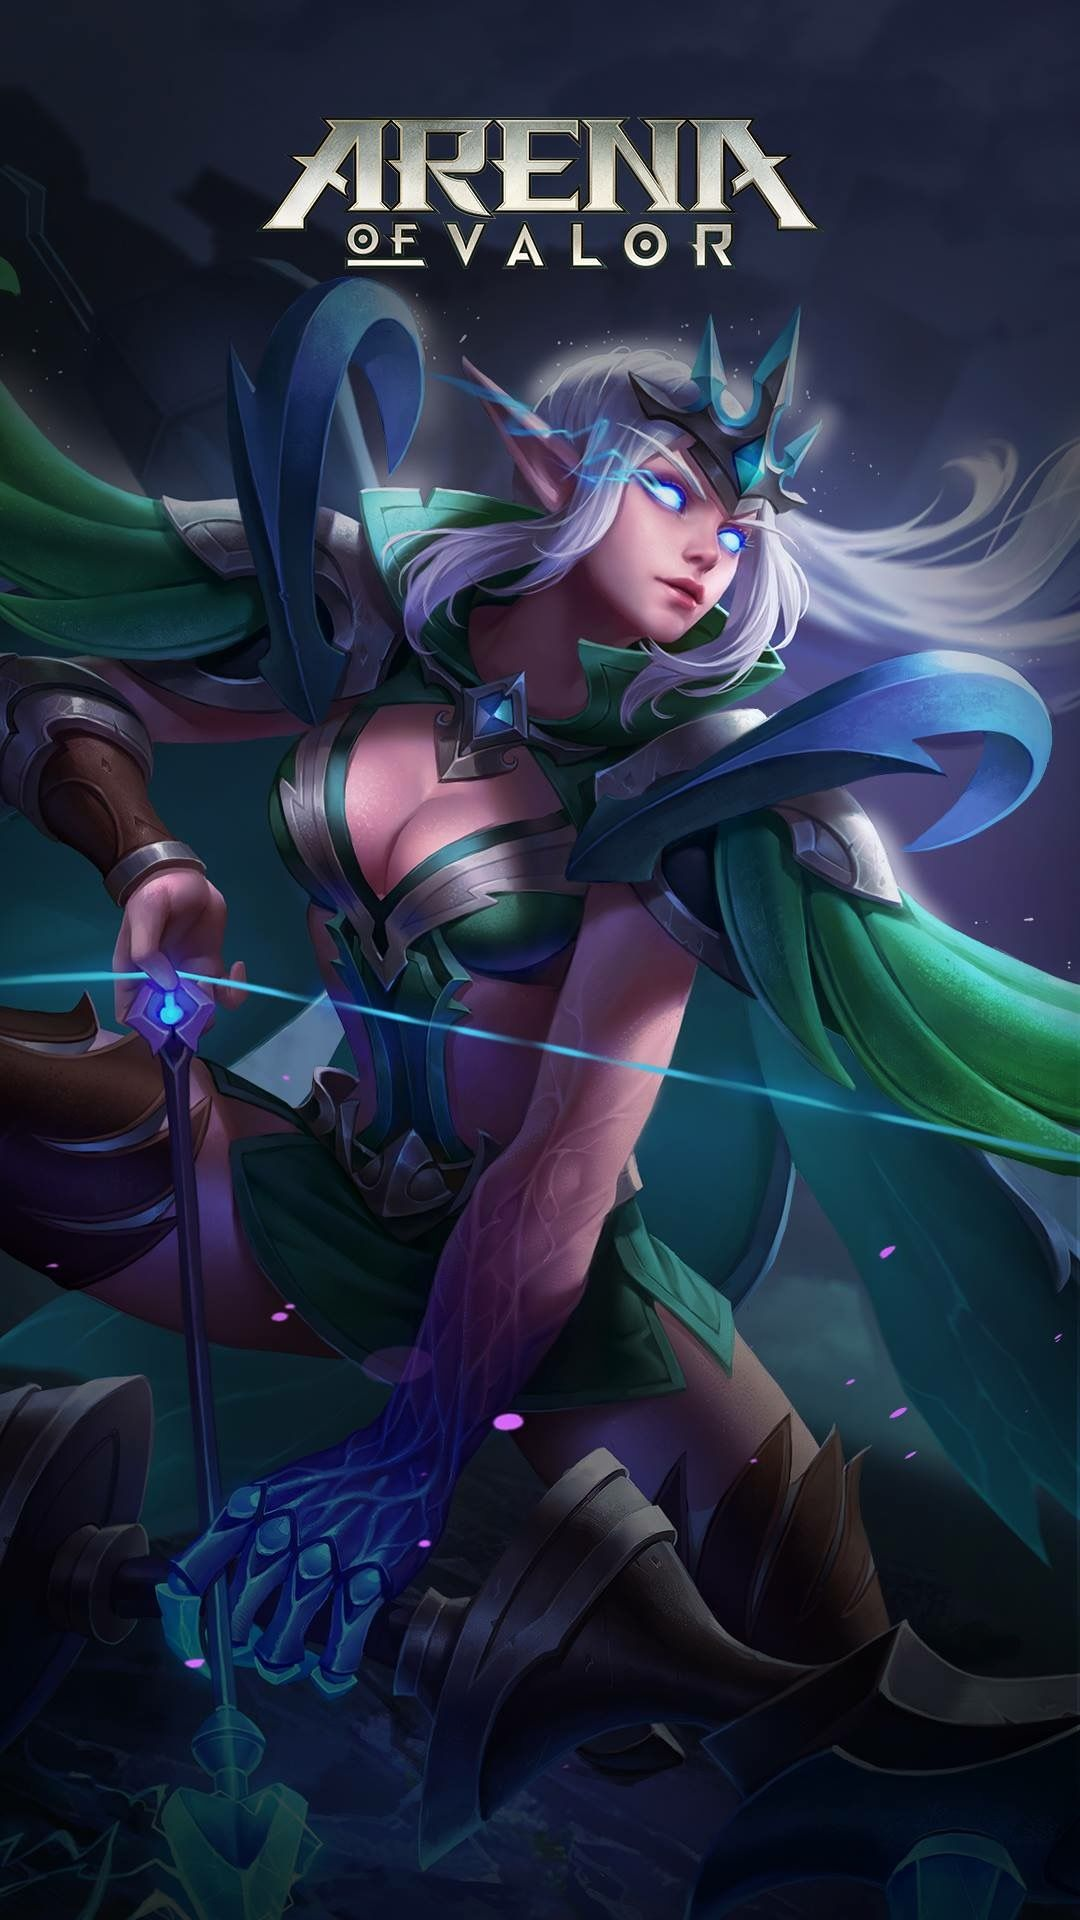 Tel Annas Mobile Legends Game Character Character Design League Of Legends Archer